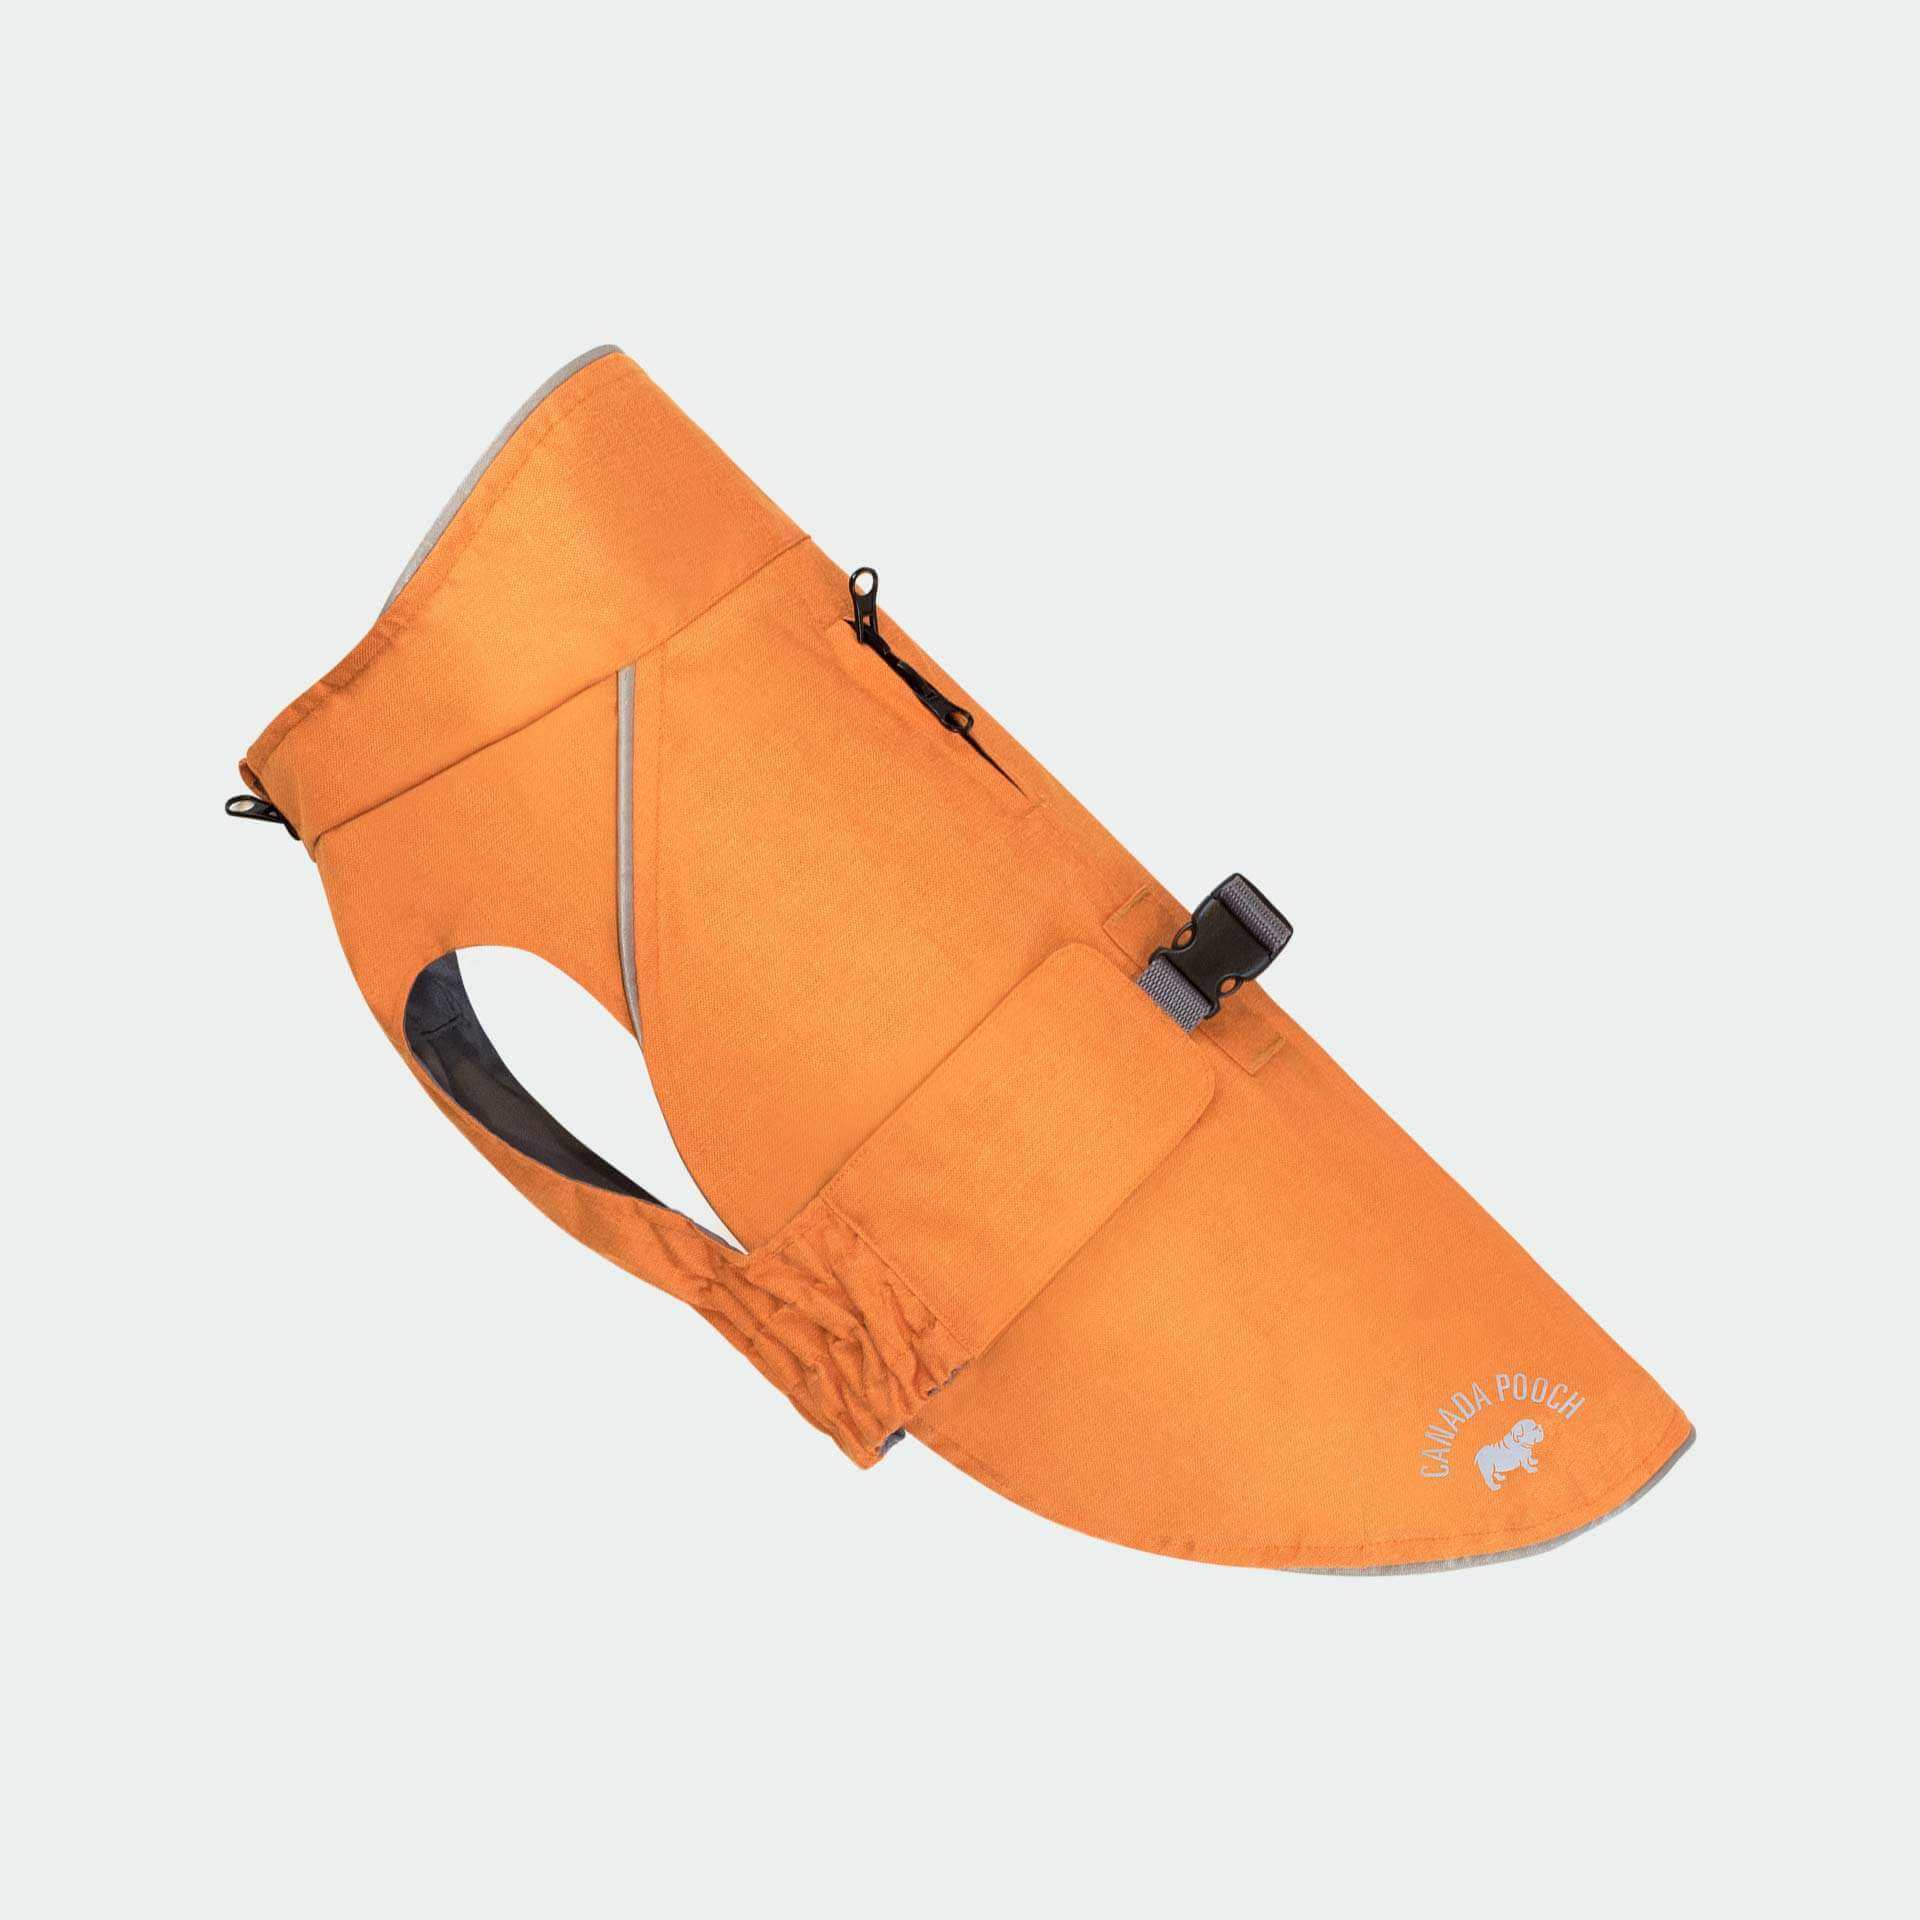 canada-pooch-orange-expedition-dog-coat-product-shot–color_97